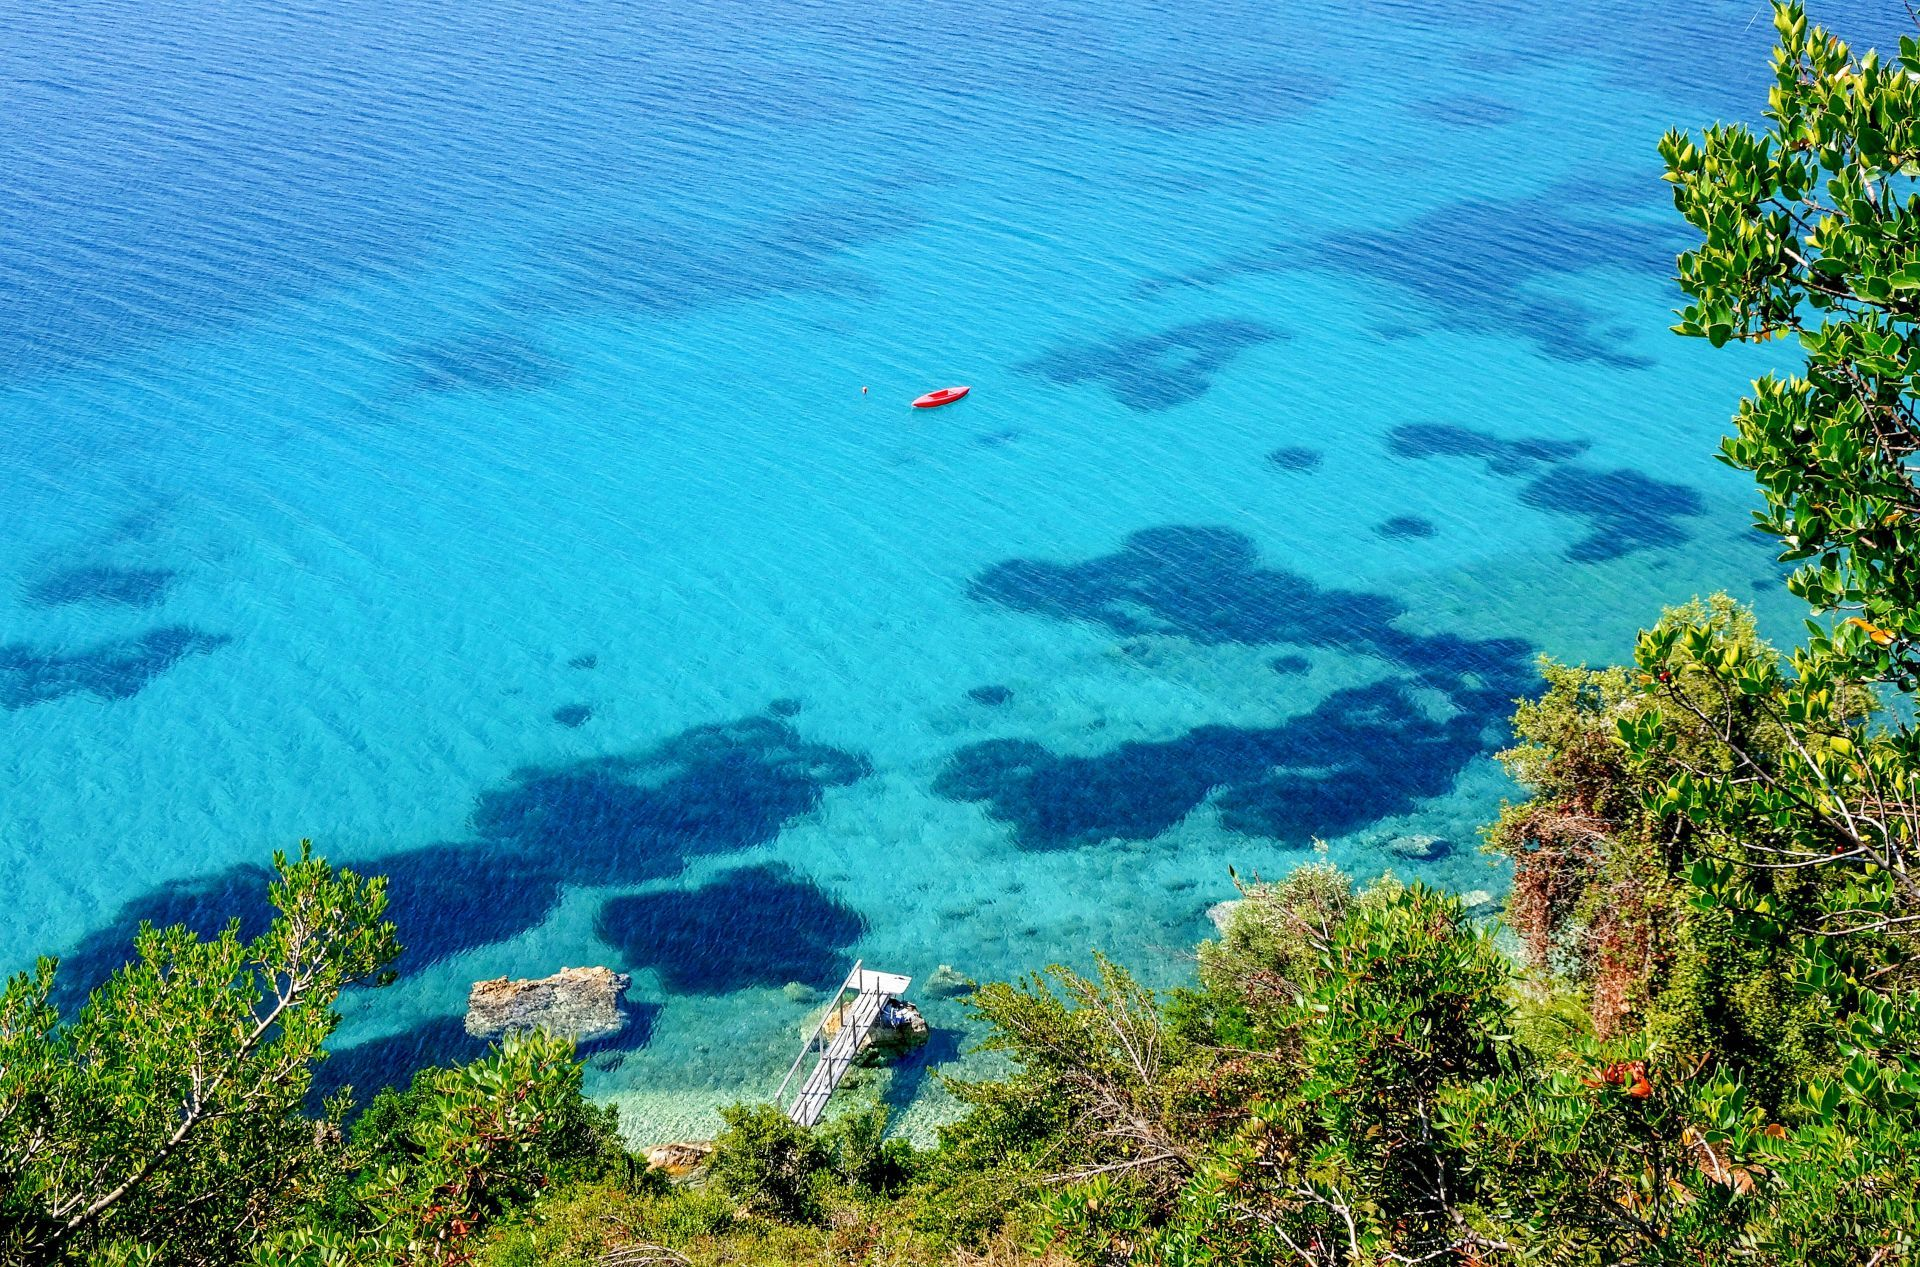 Sporades islands: The crystal clear waters of Alonissos island